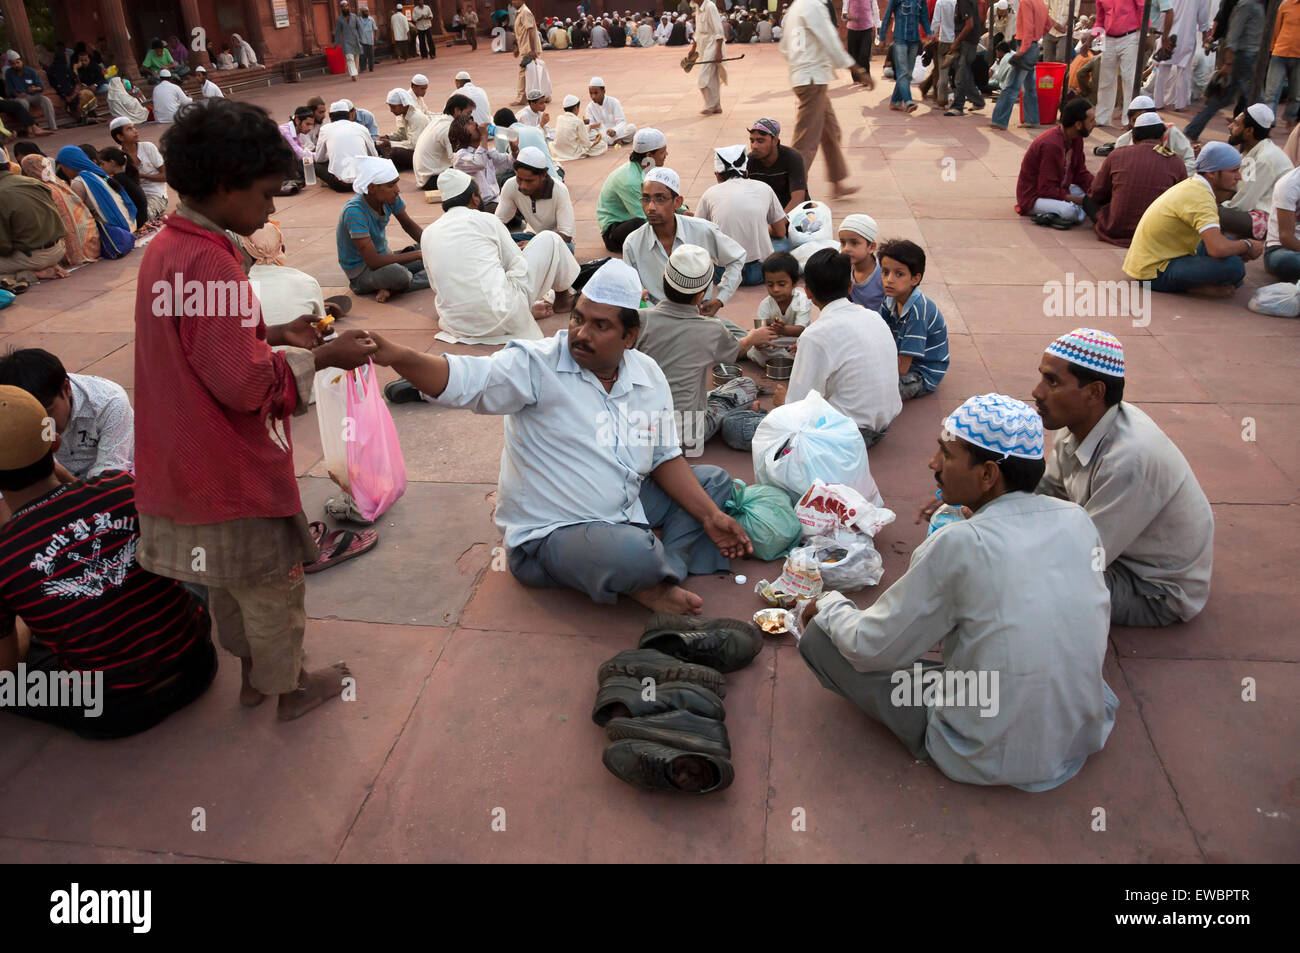 A man hands over food to a child during traditional Iftar (fast-breaking) at Jama Masjid during Ramadan. Old Delhi, - Stock Image